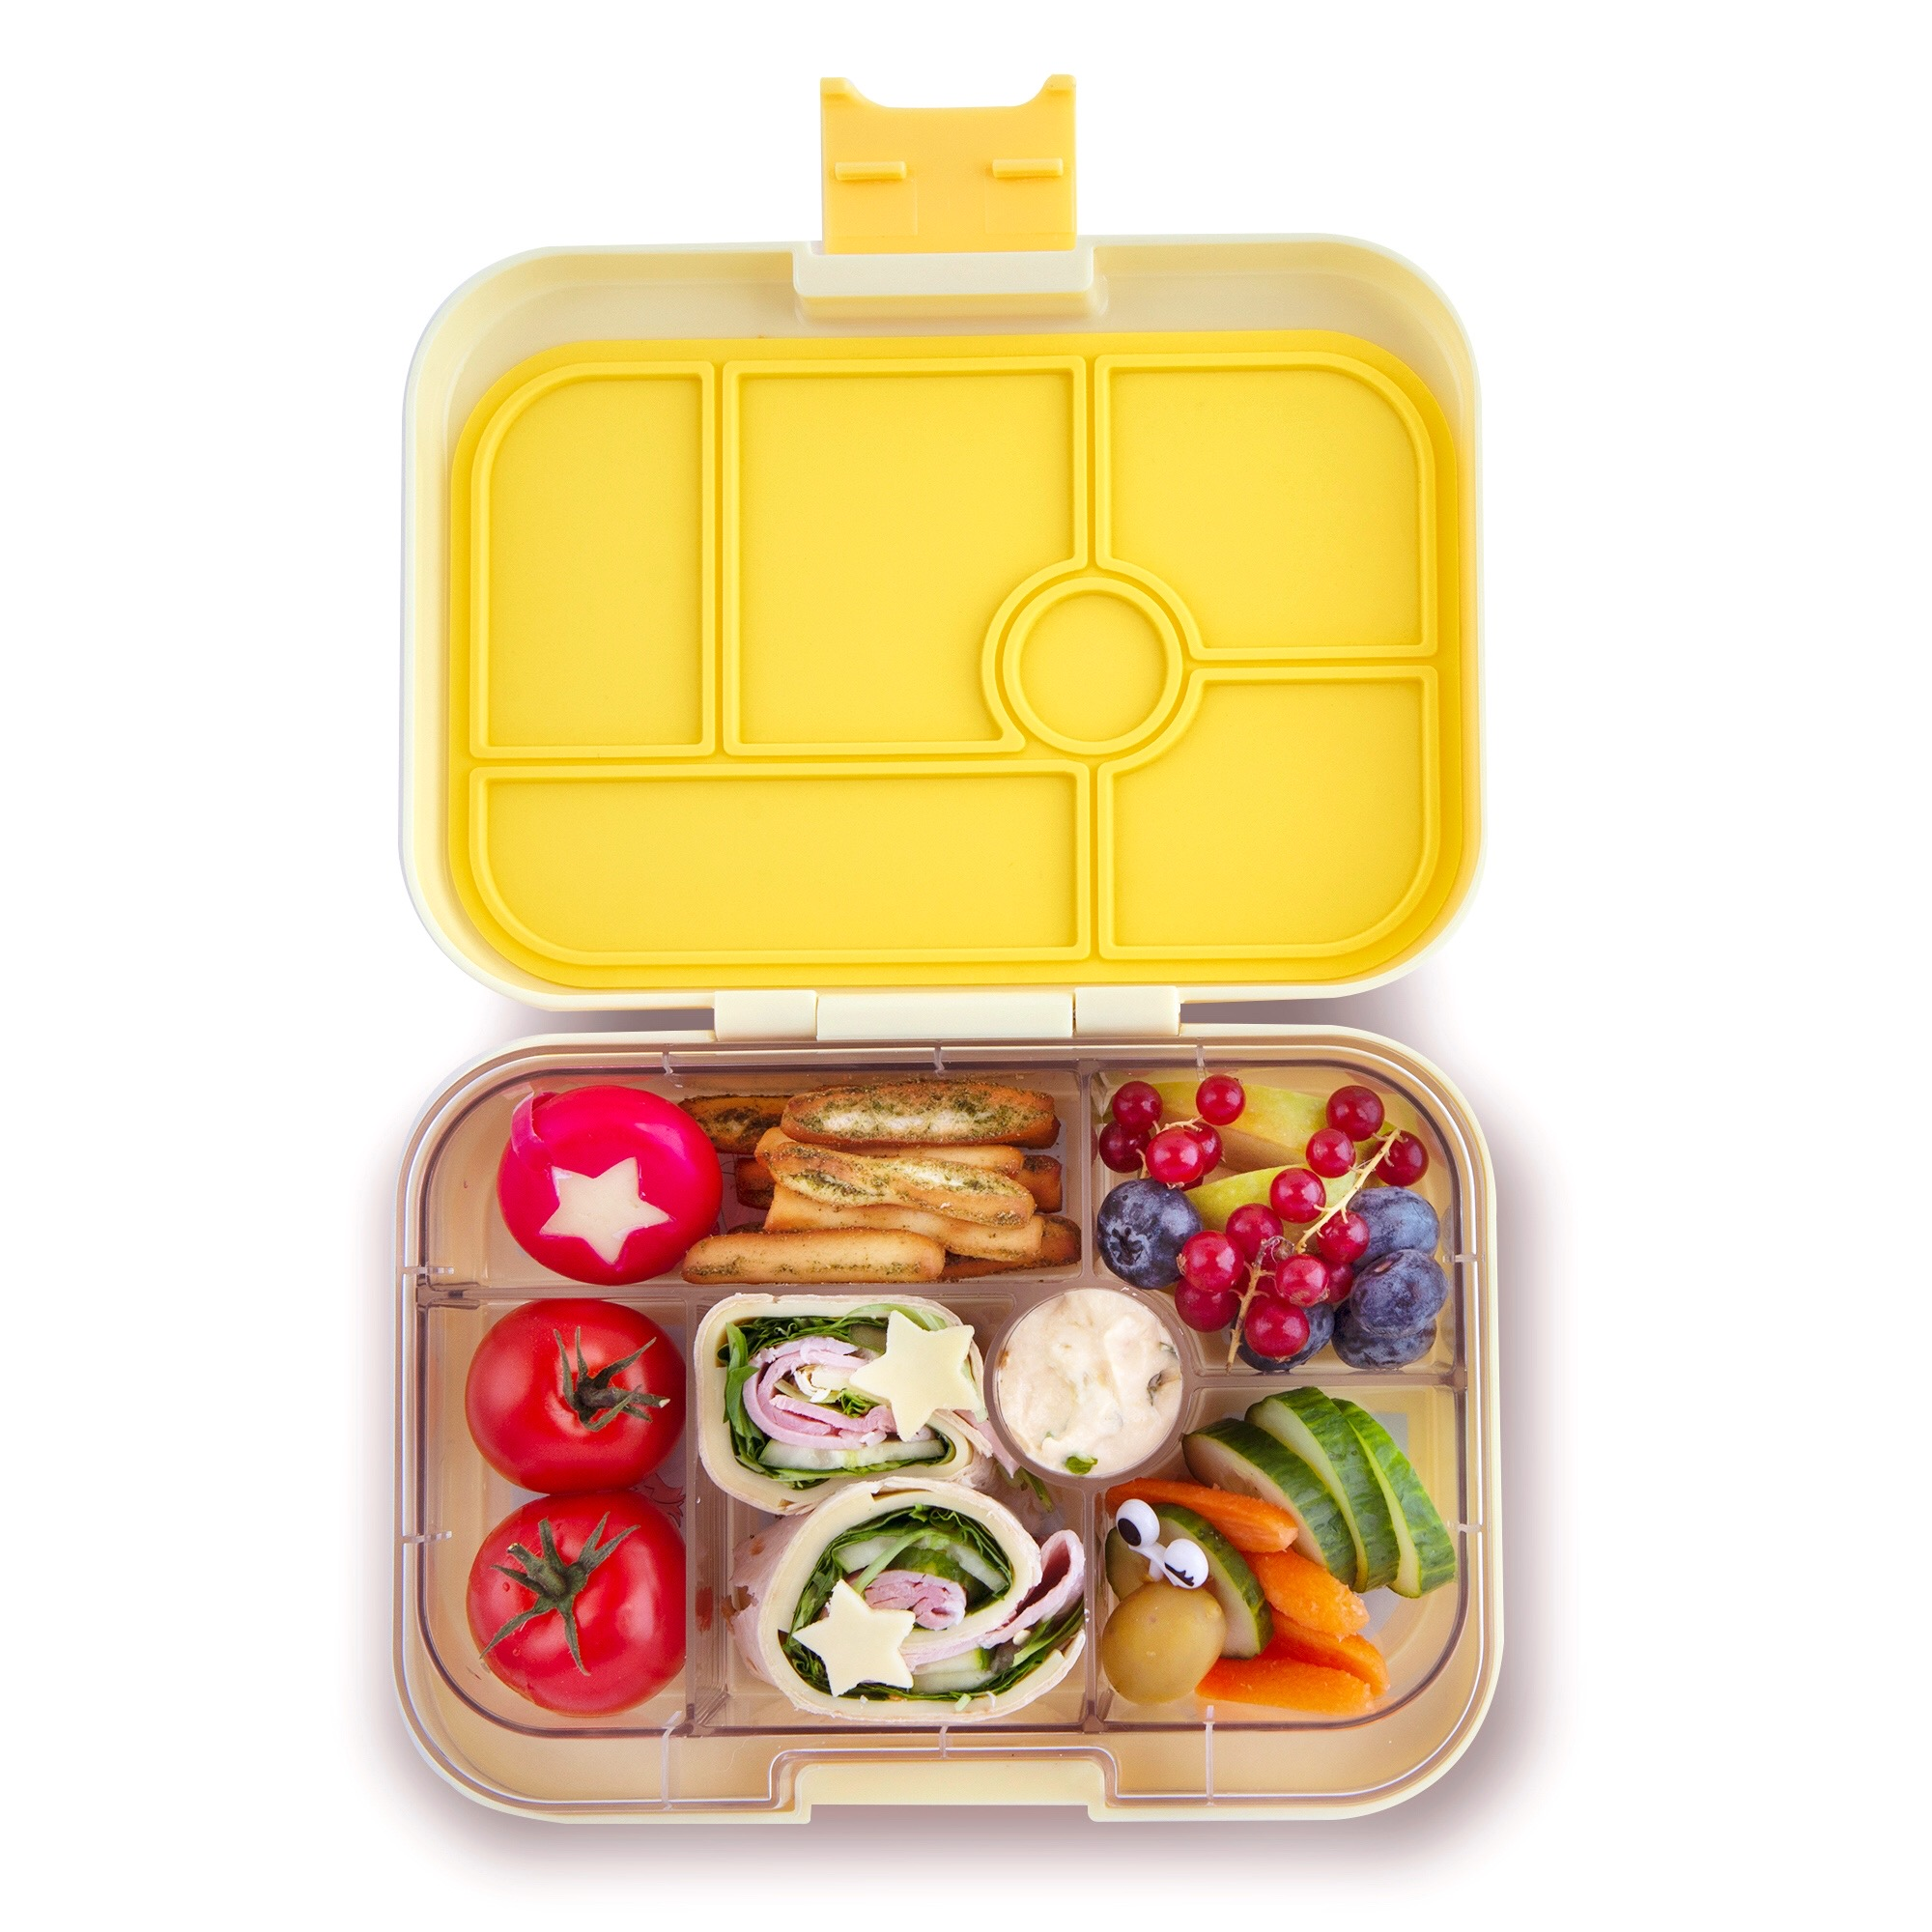 Lila Purple Yumbox Original 6-Compartment Lunch Box